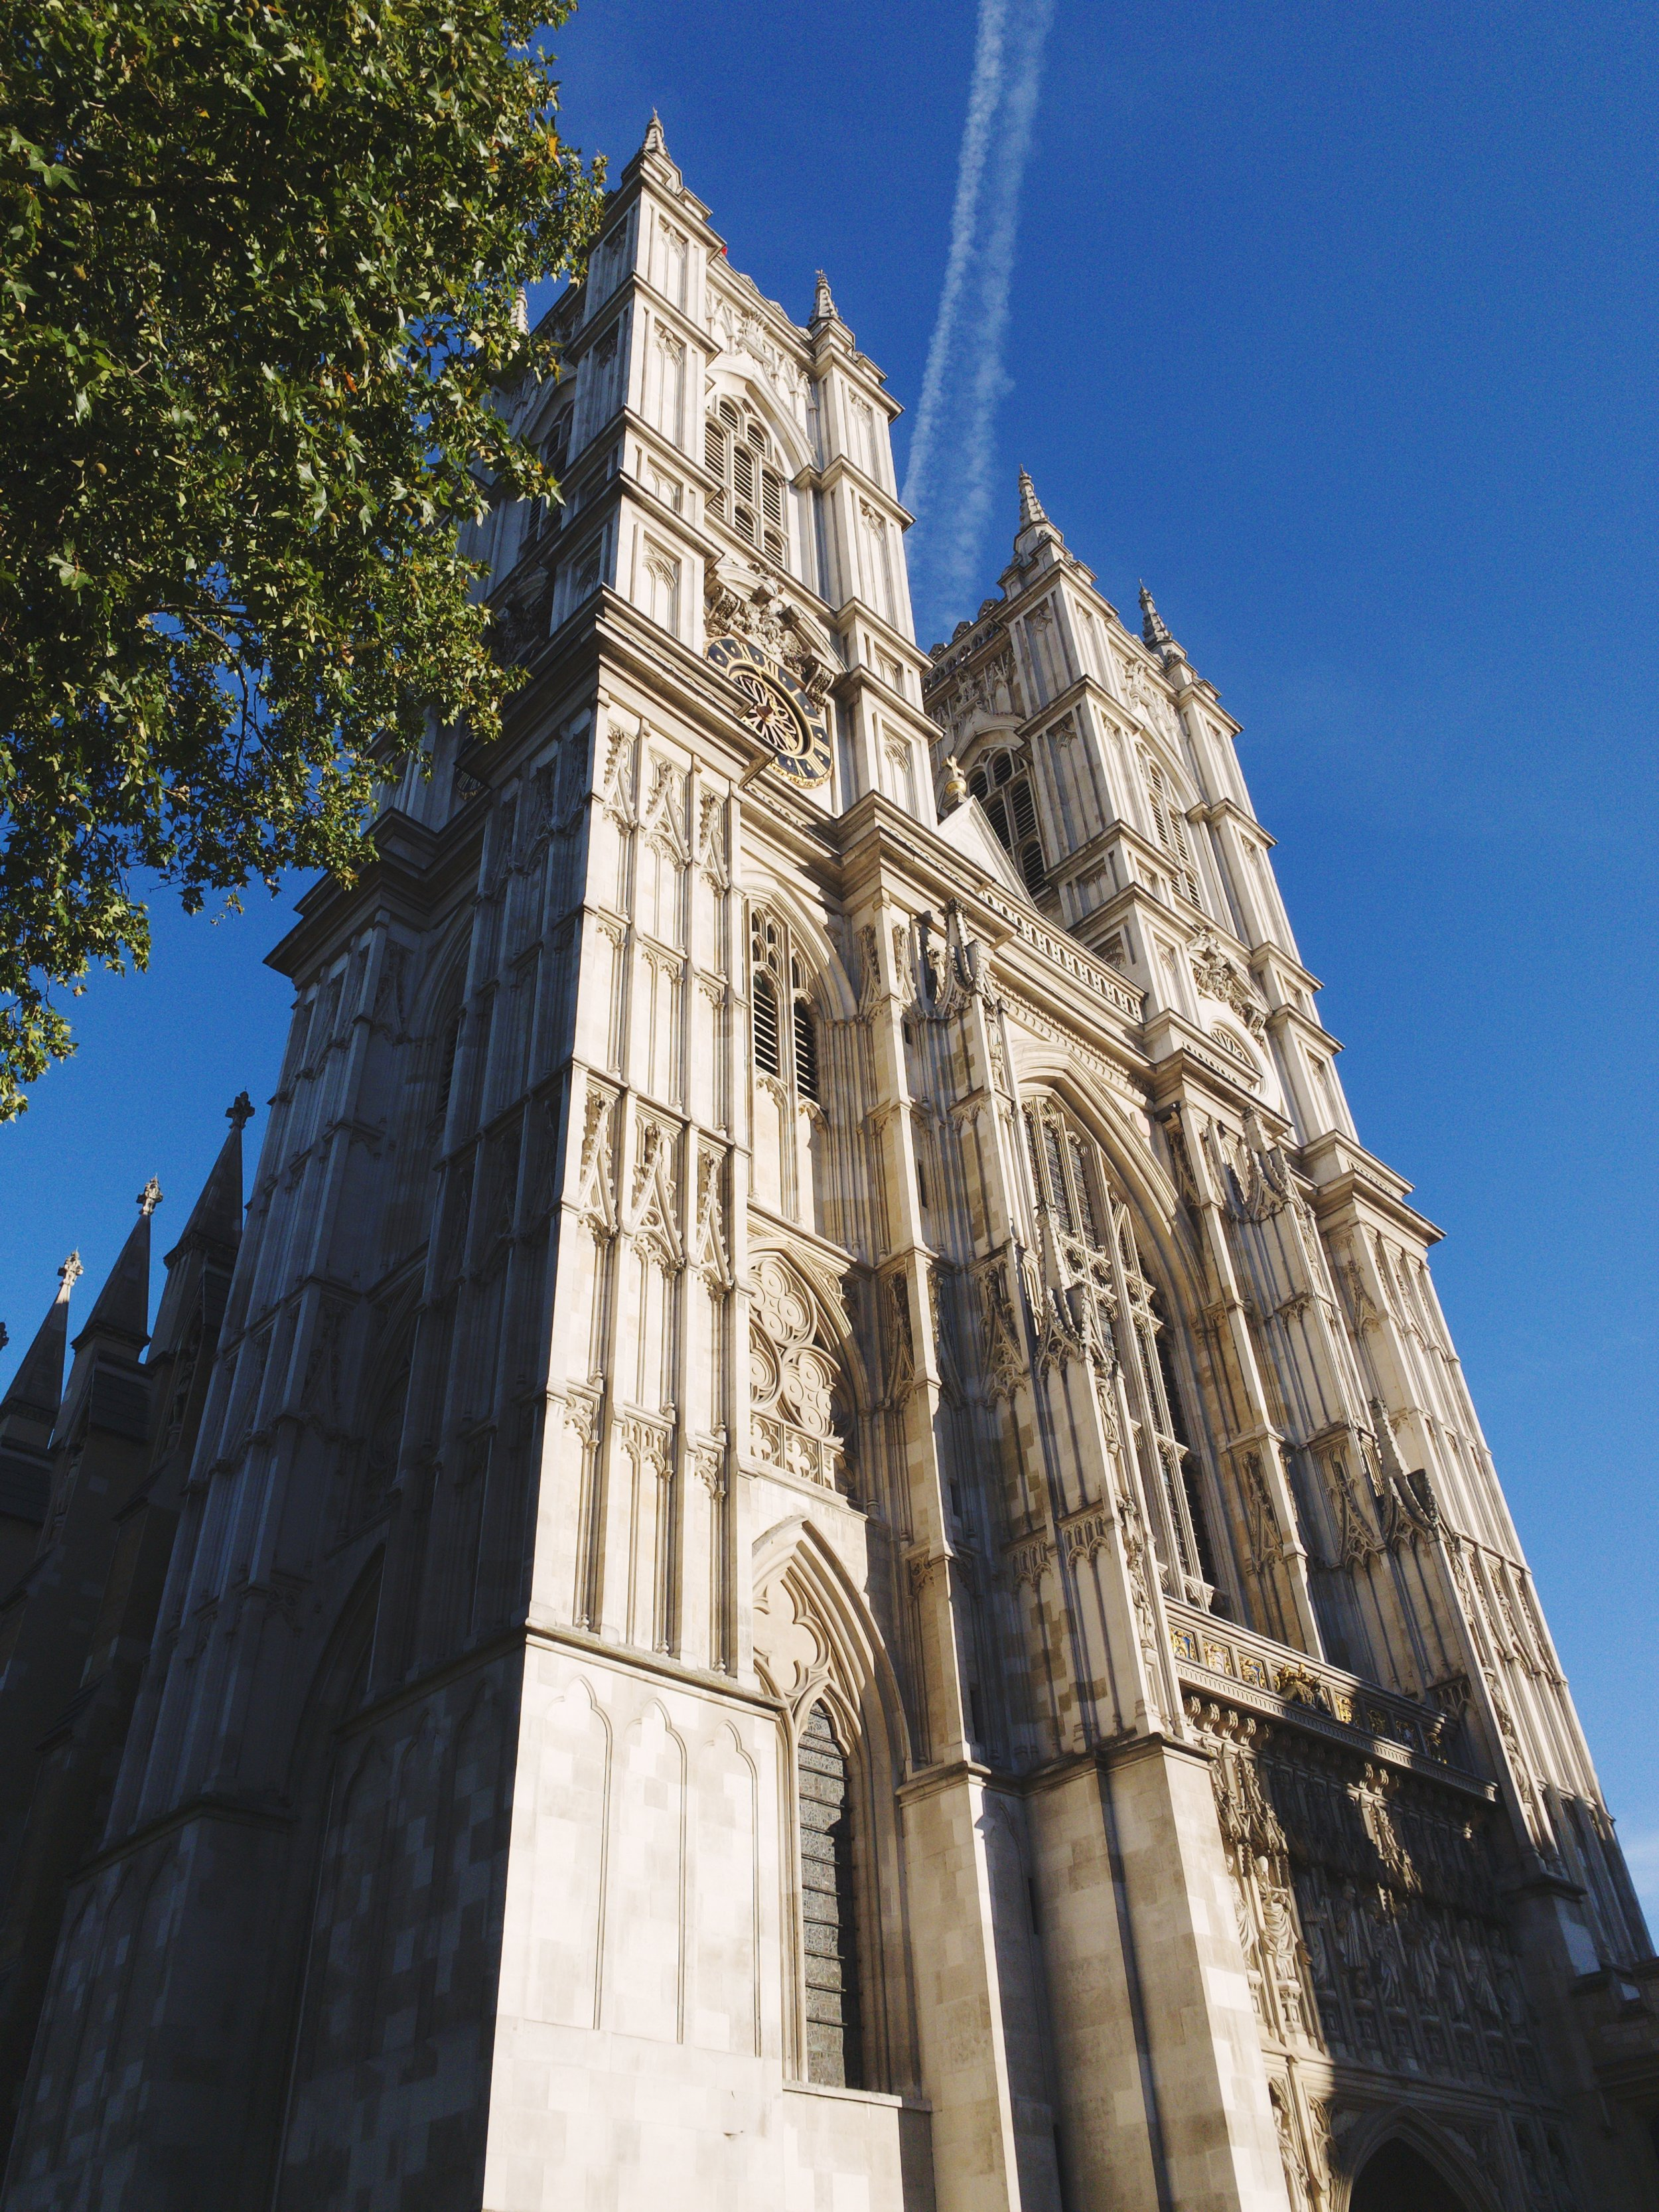 Who can get married at Westminster Abbey? Who attended the rehearsal of her own funeral? We will learn all of this and more.